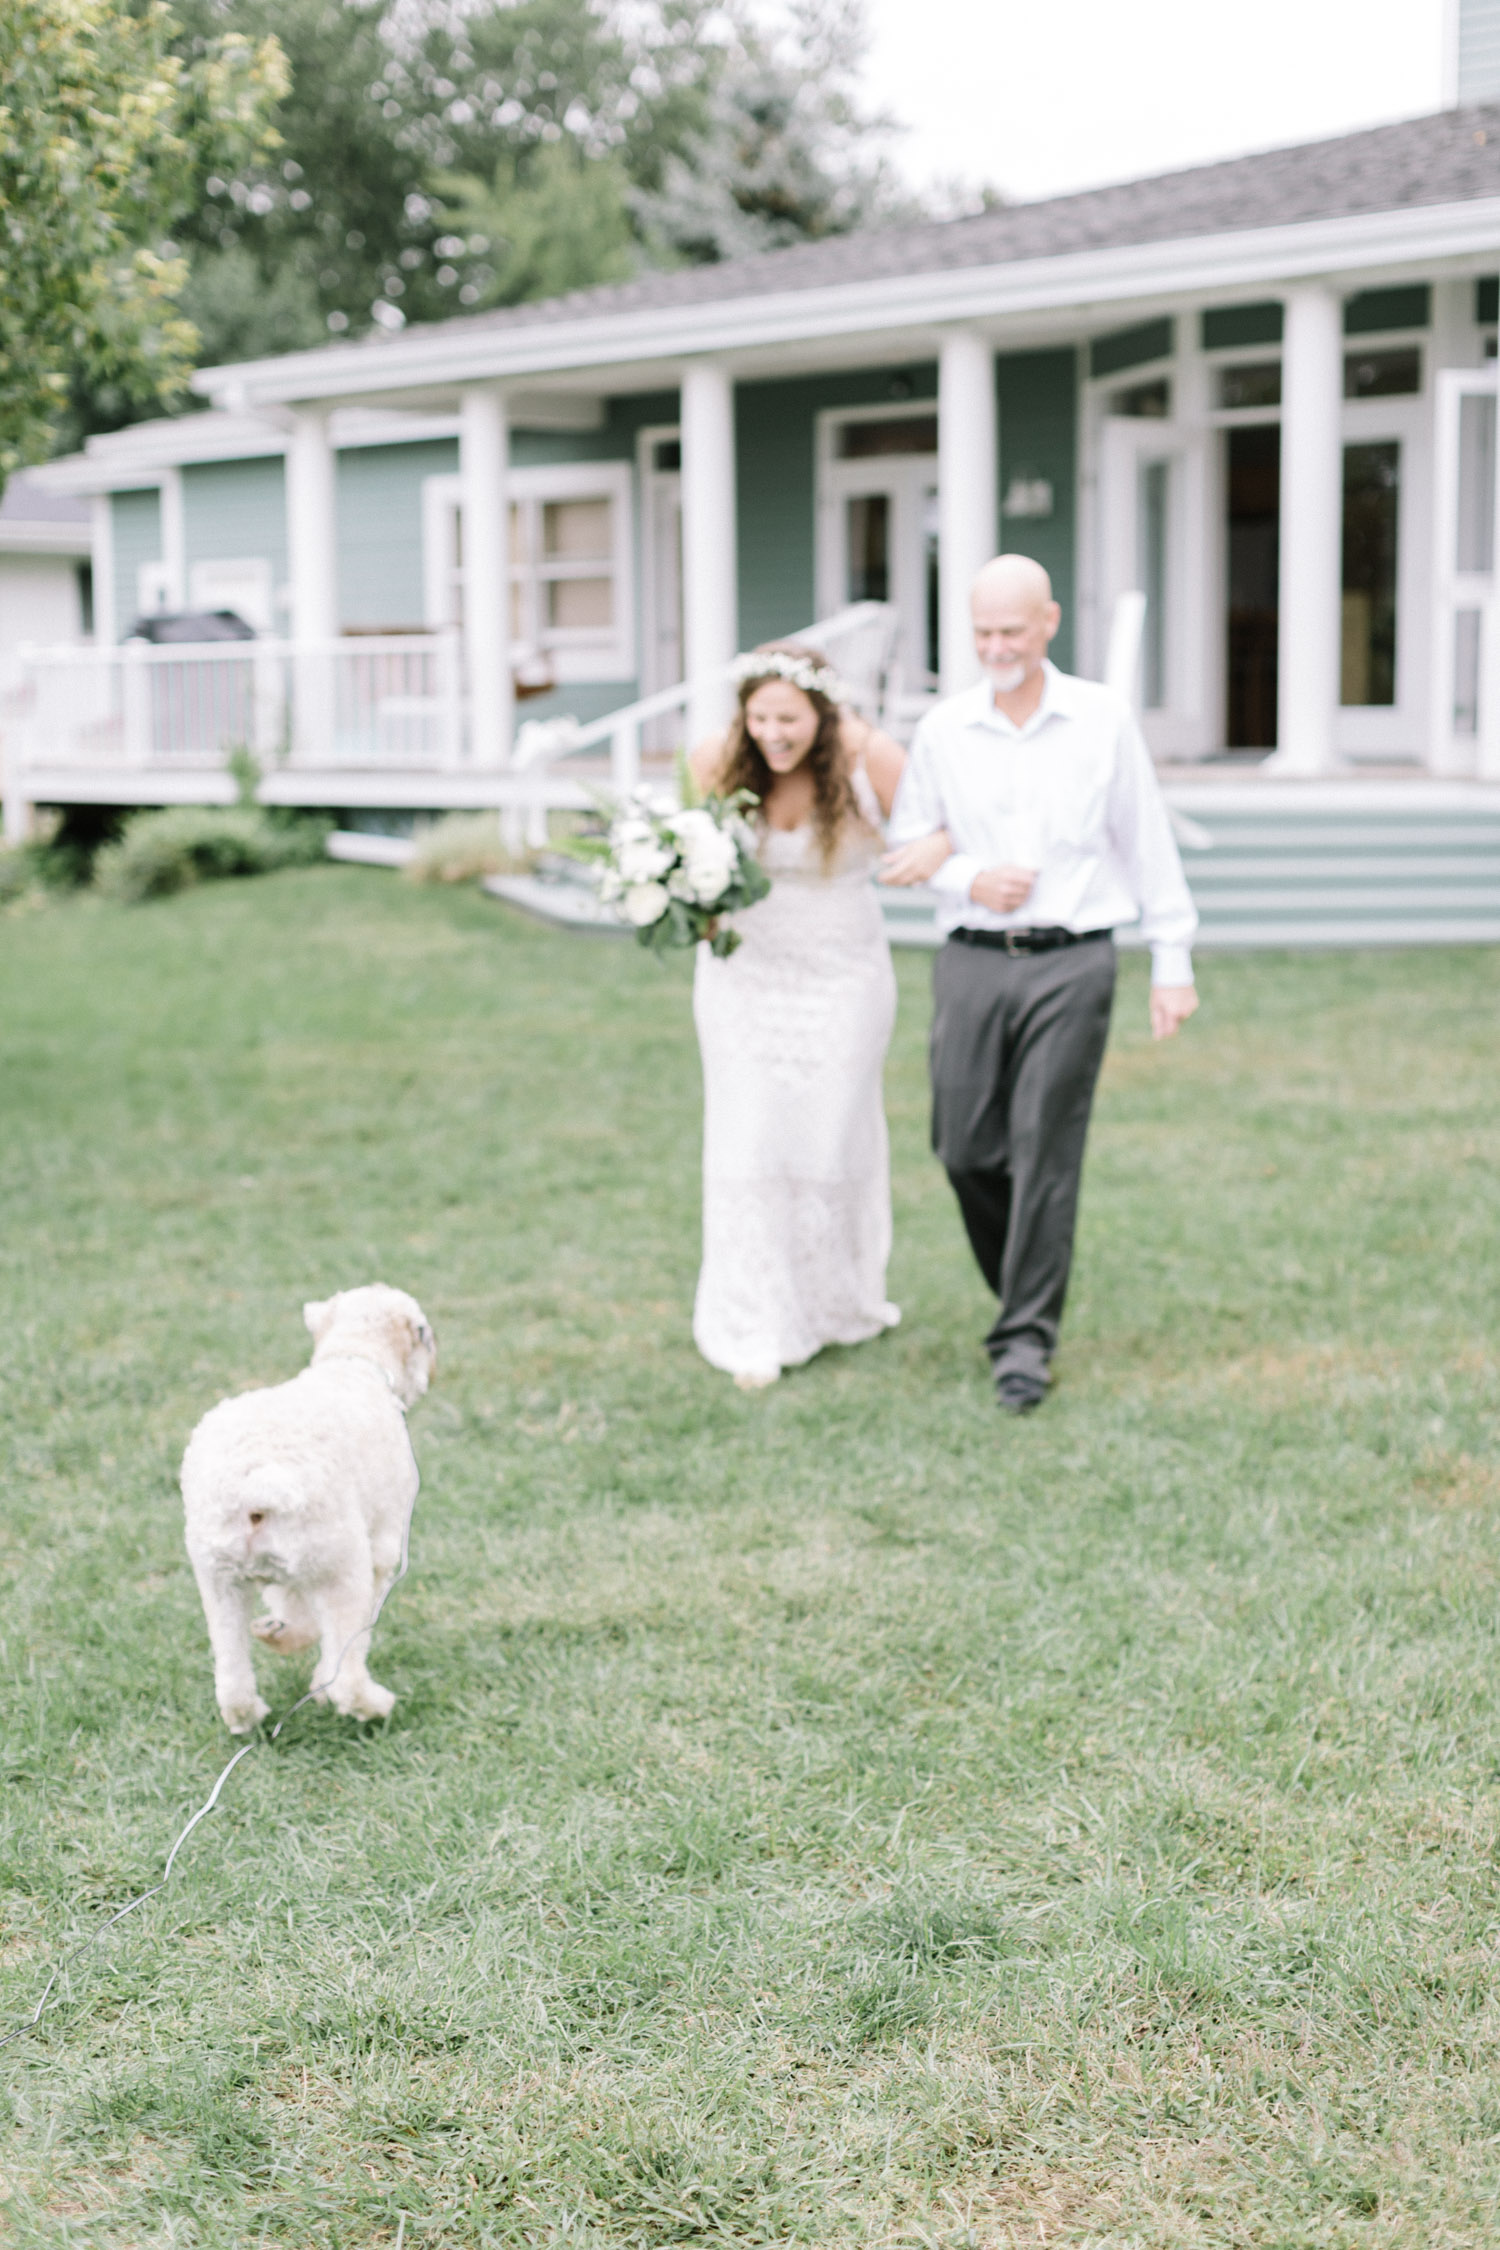 Motion blur is caught as the ring bearer dog breaks free and runs toward the bride & her father while they walk down the aisle at her Michigan wedding